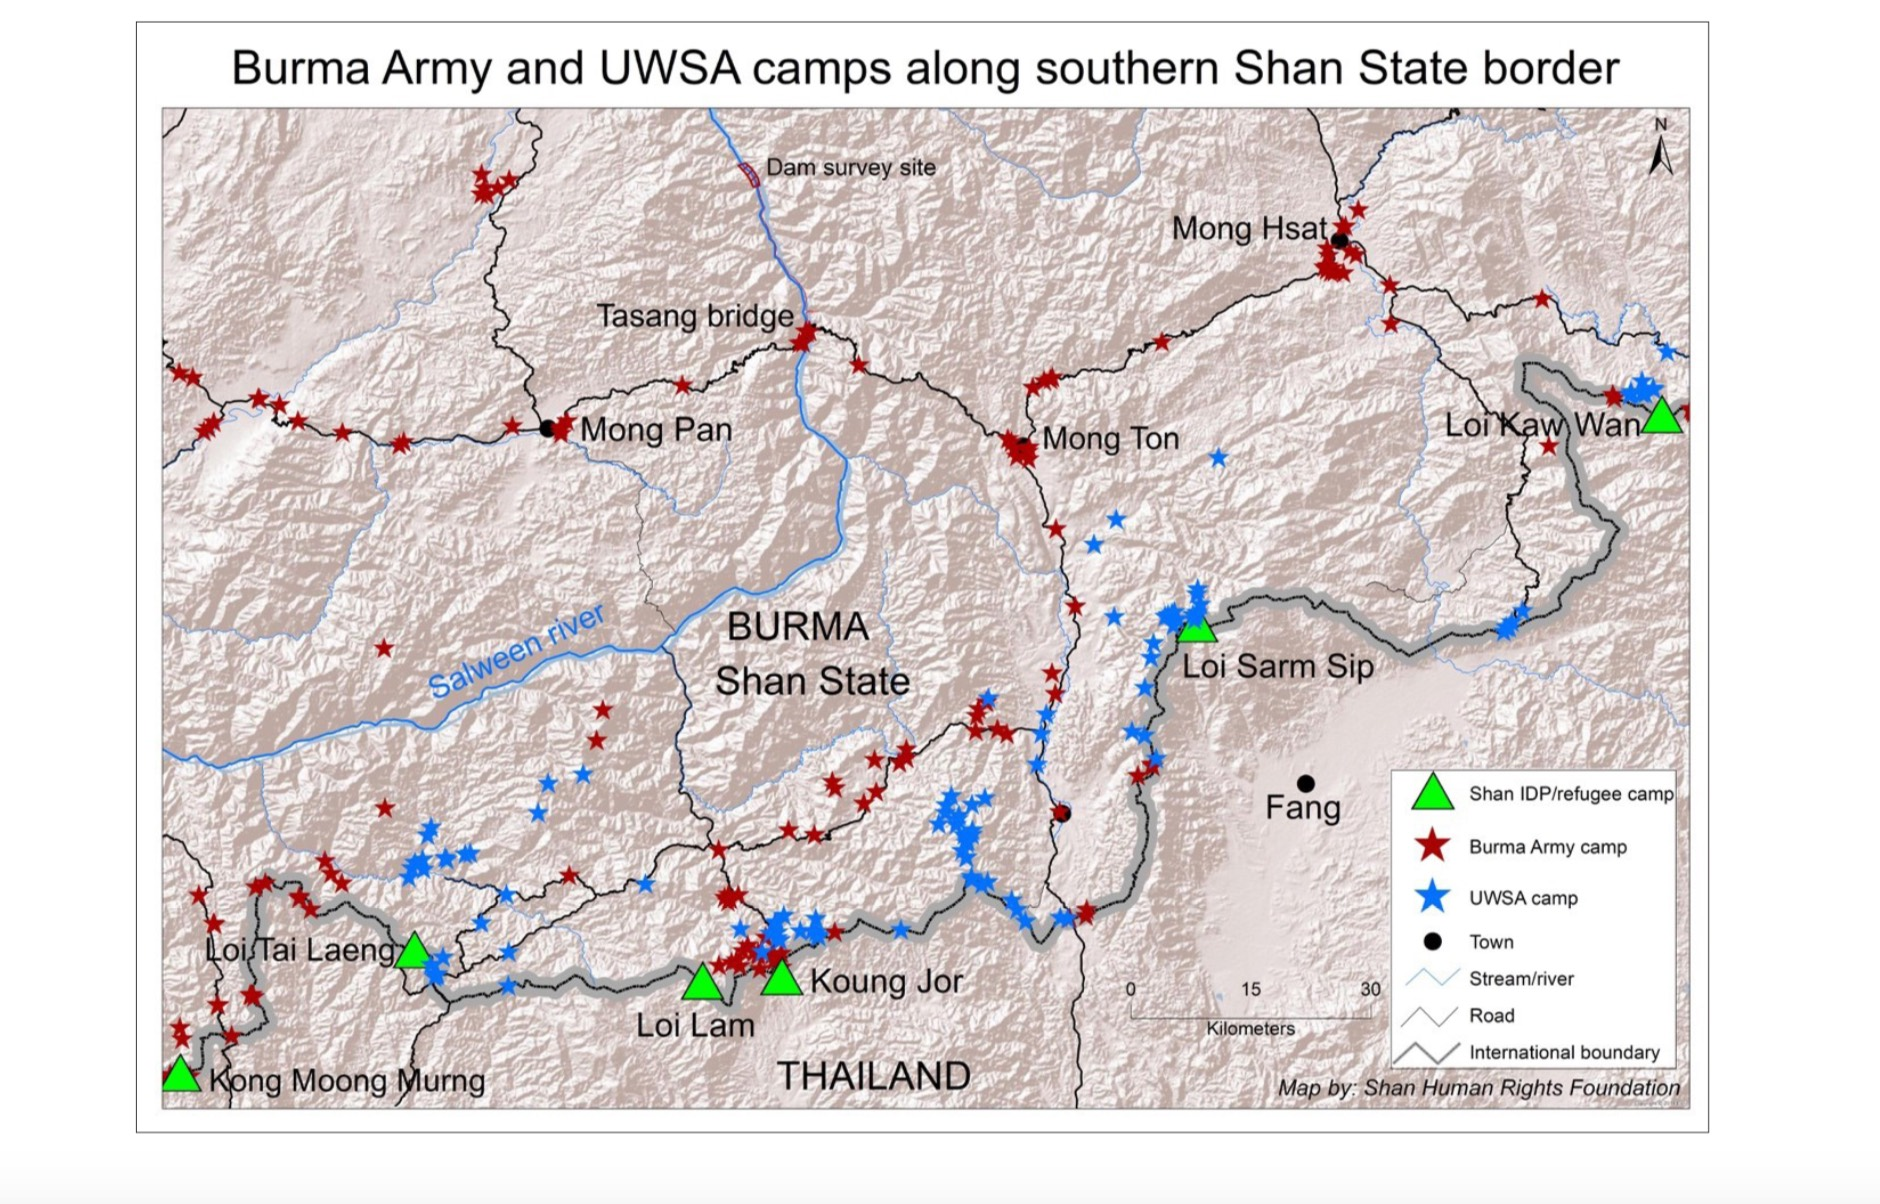 Groups Call for Demilitarization of Areas Near Shan IDP Camps on mon state myanmar map, kachin state map, chin state myanmar map, shan state army south, military bases washington state map, kayin state myanmar map, glen falls new york state map, idaho state map, lashio on map, northern new mexico map, shan state in thailand, rakhine state myanmar map, gongga shan china map, shan state 1942, shan state dress, altun shan map,